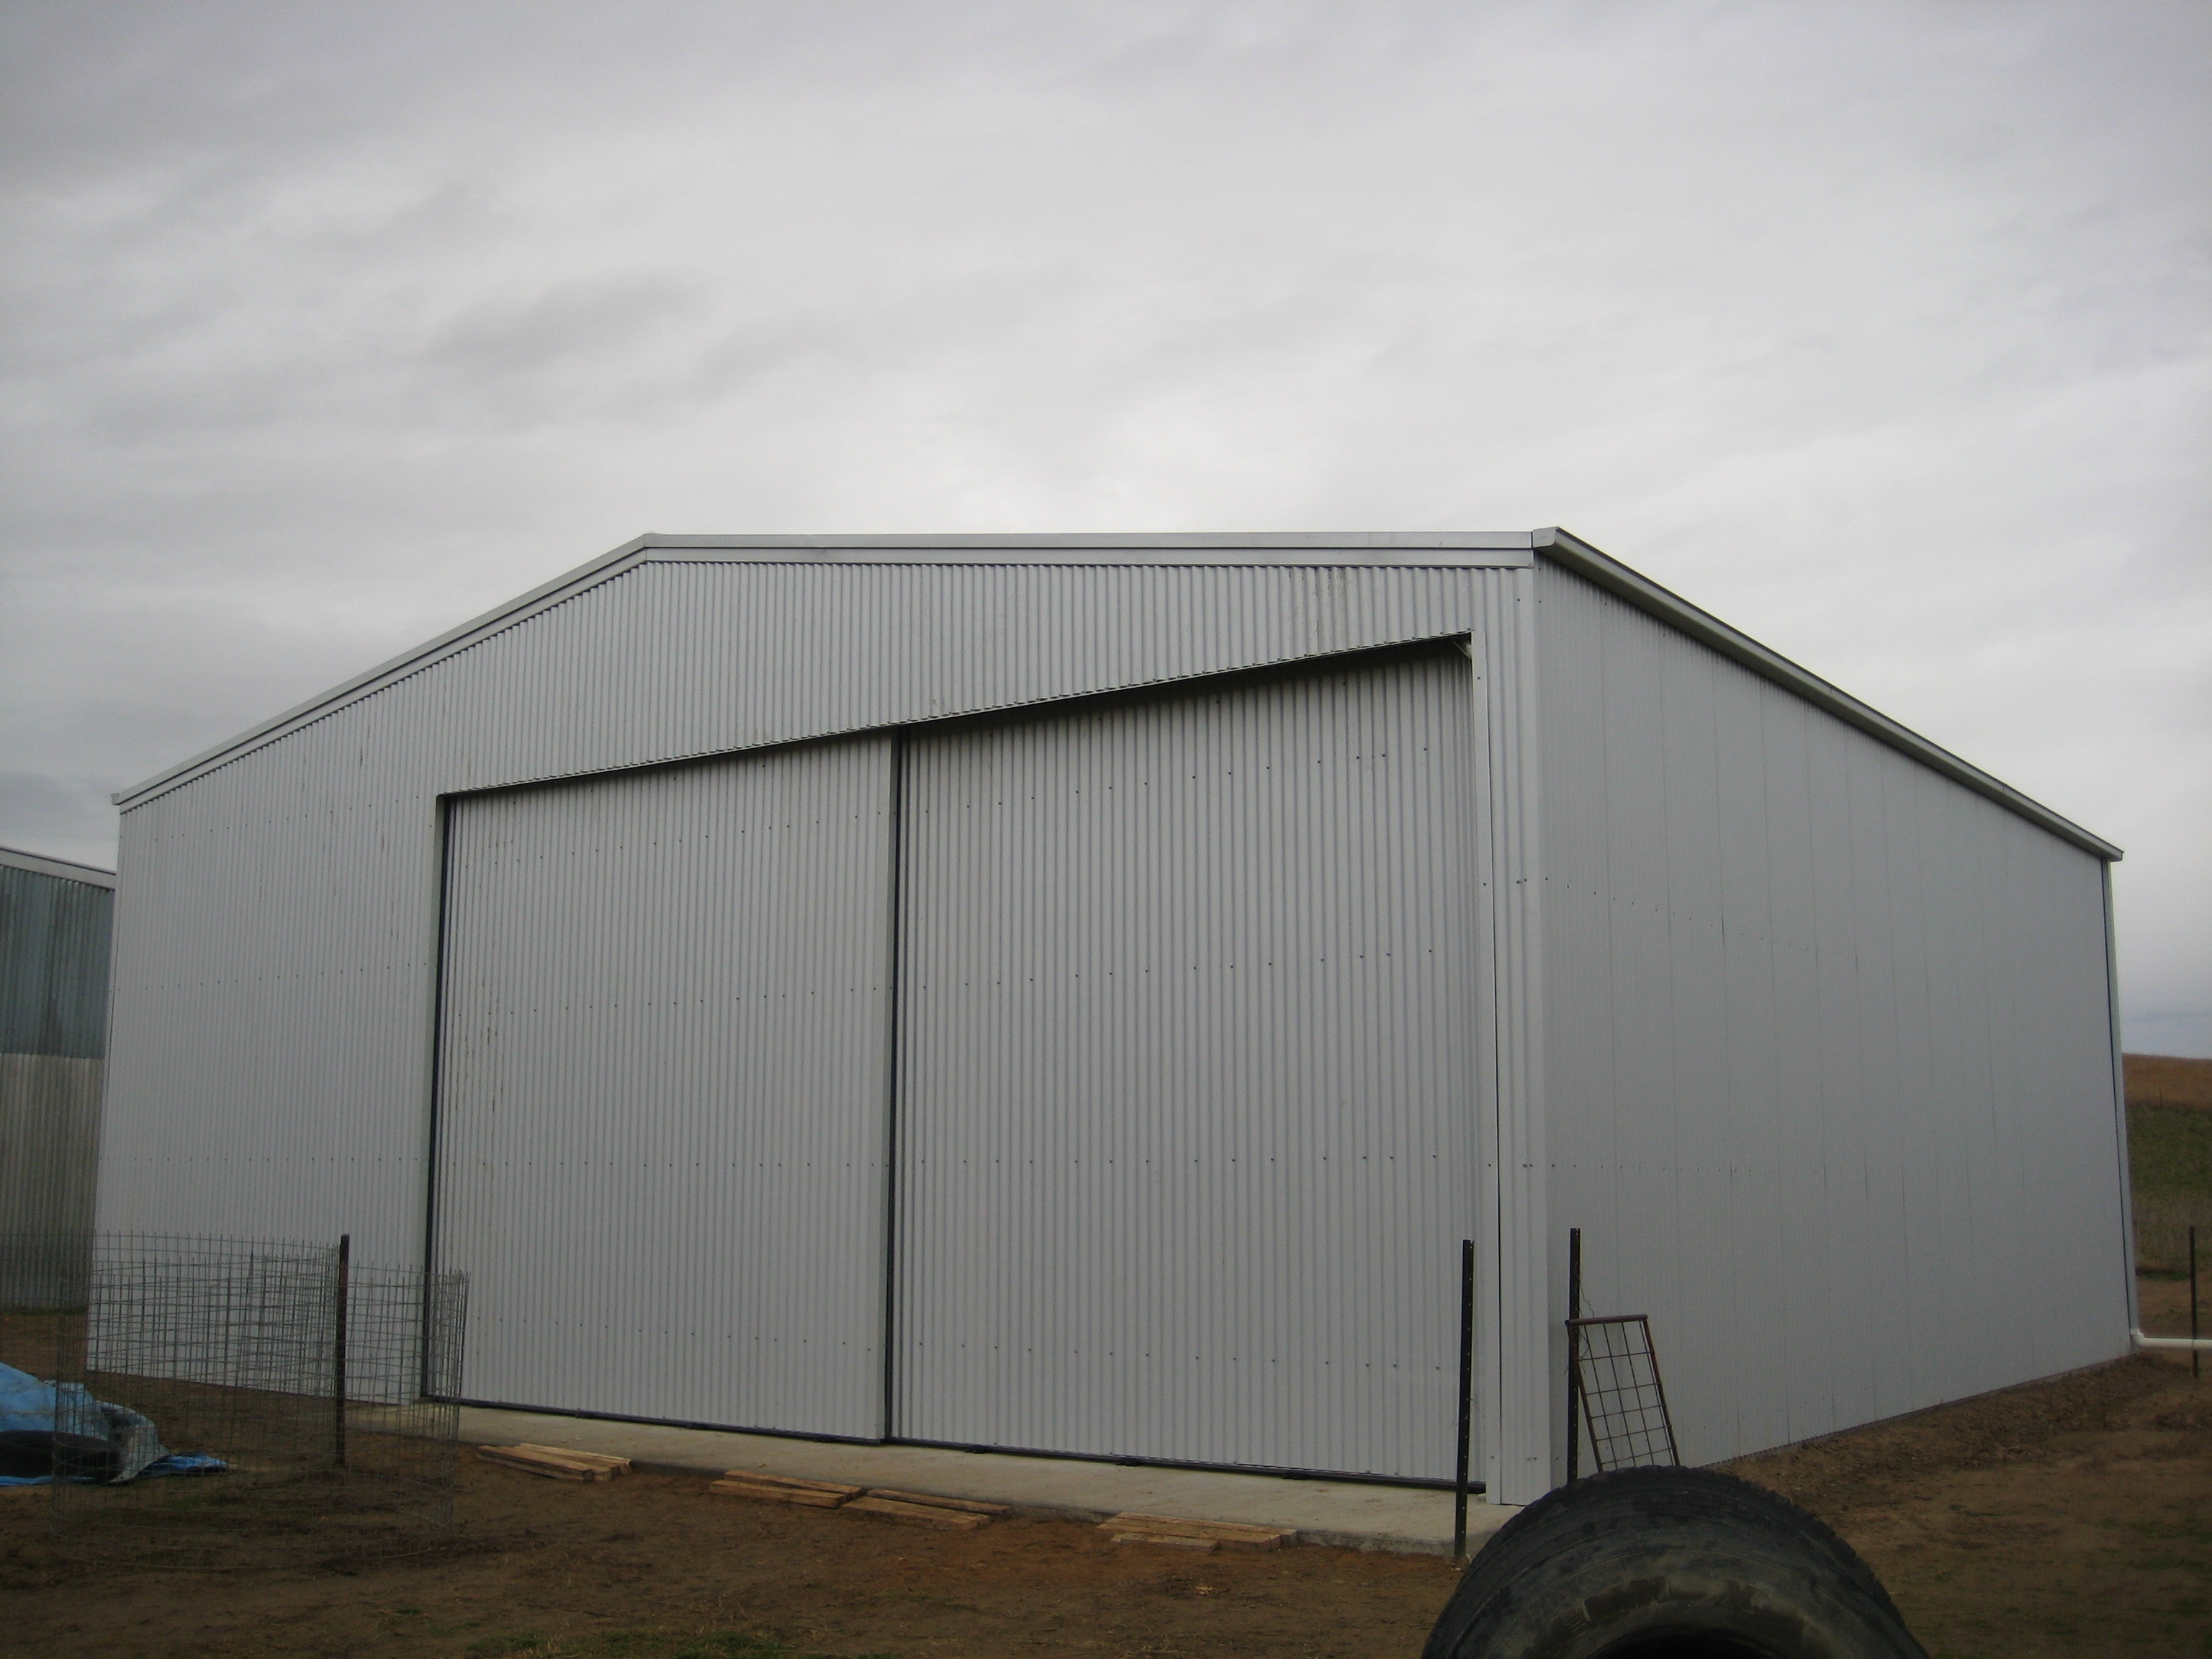 Farm Shed Sliding Doors3072 X 2304